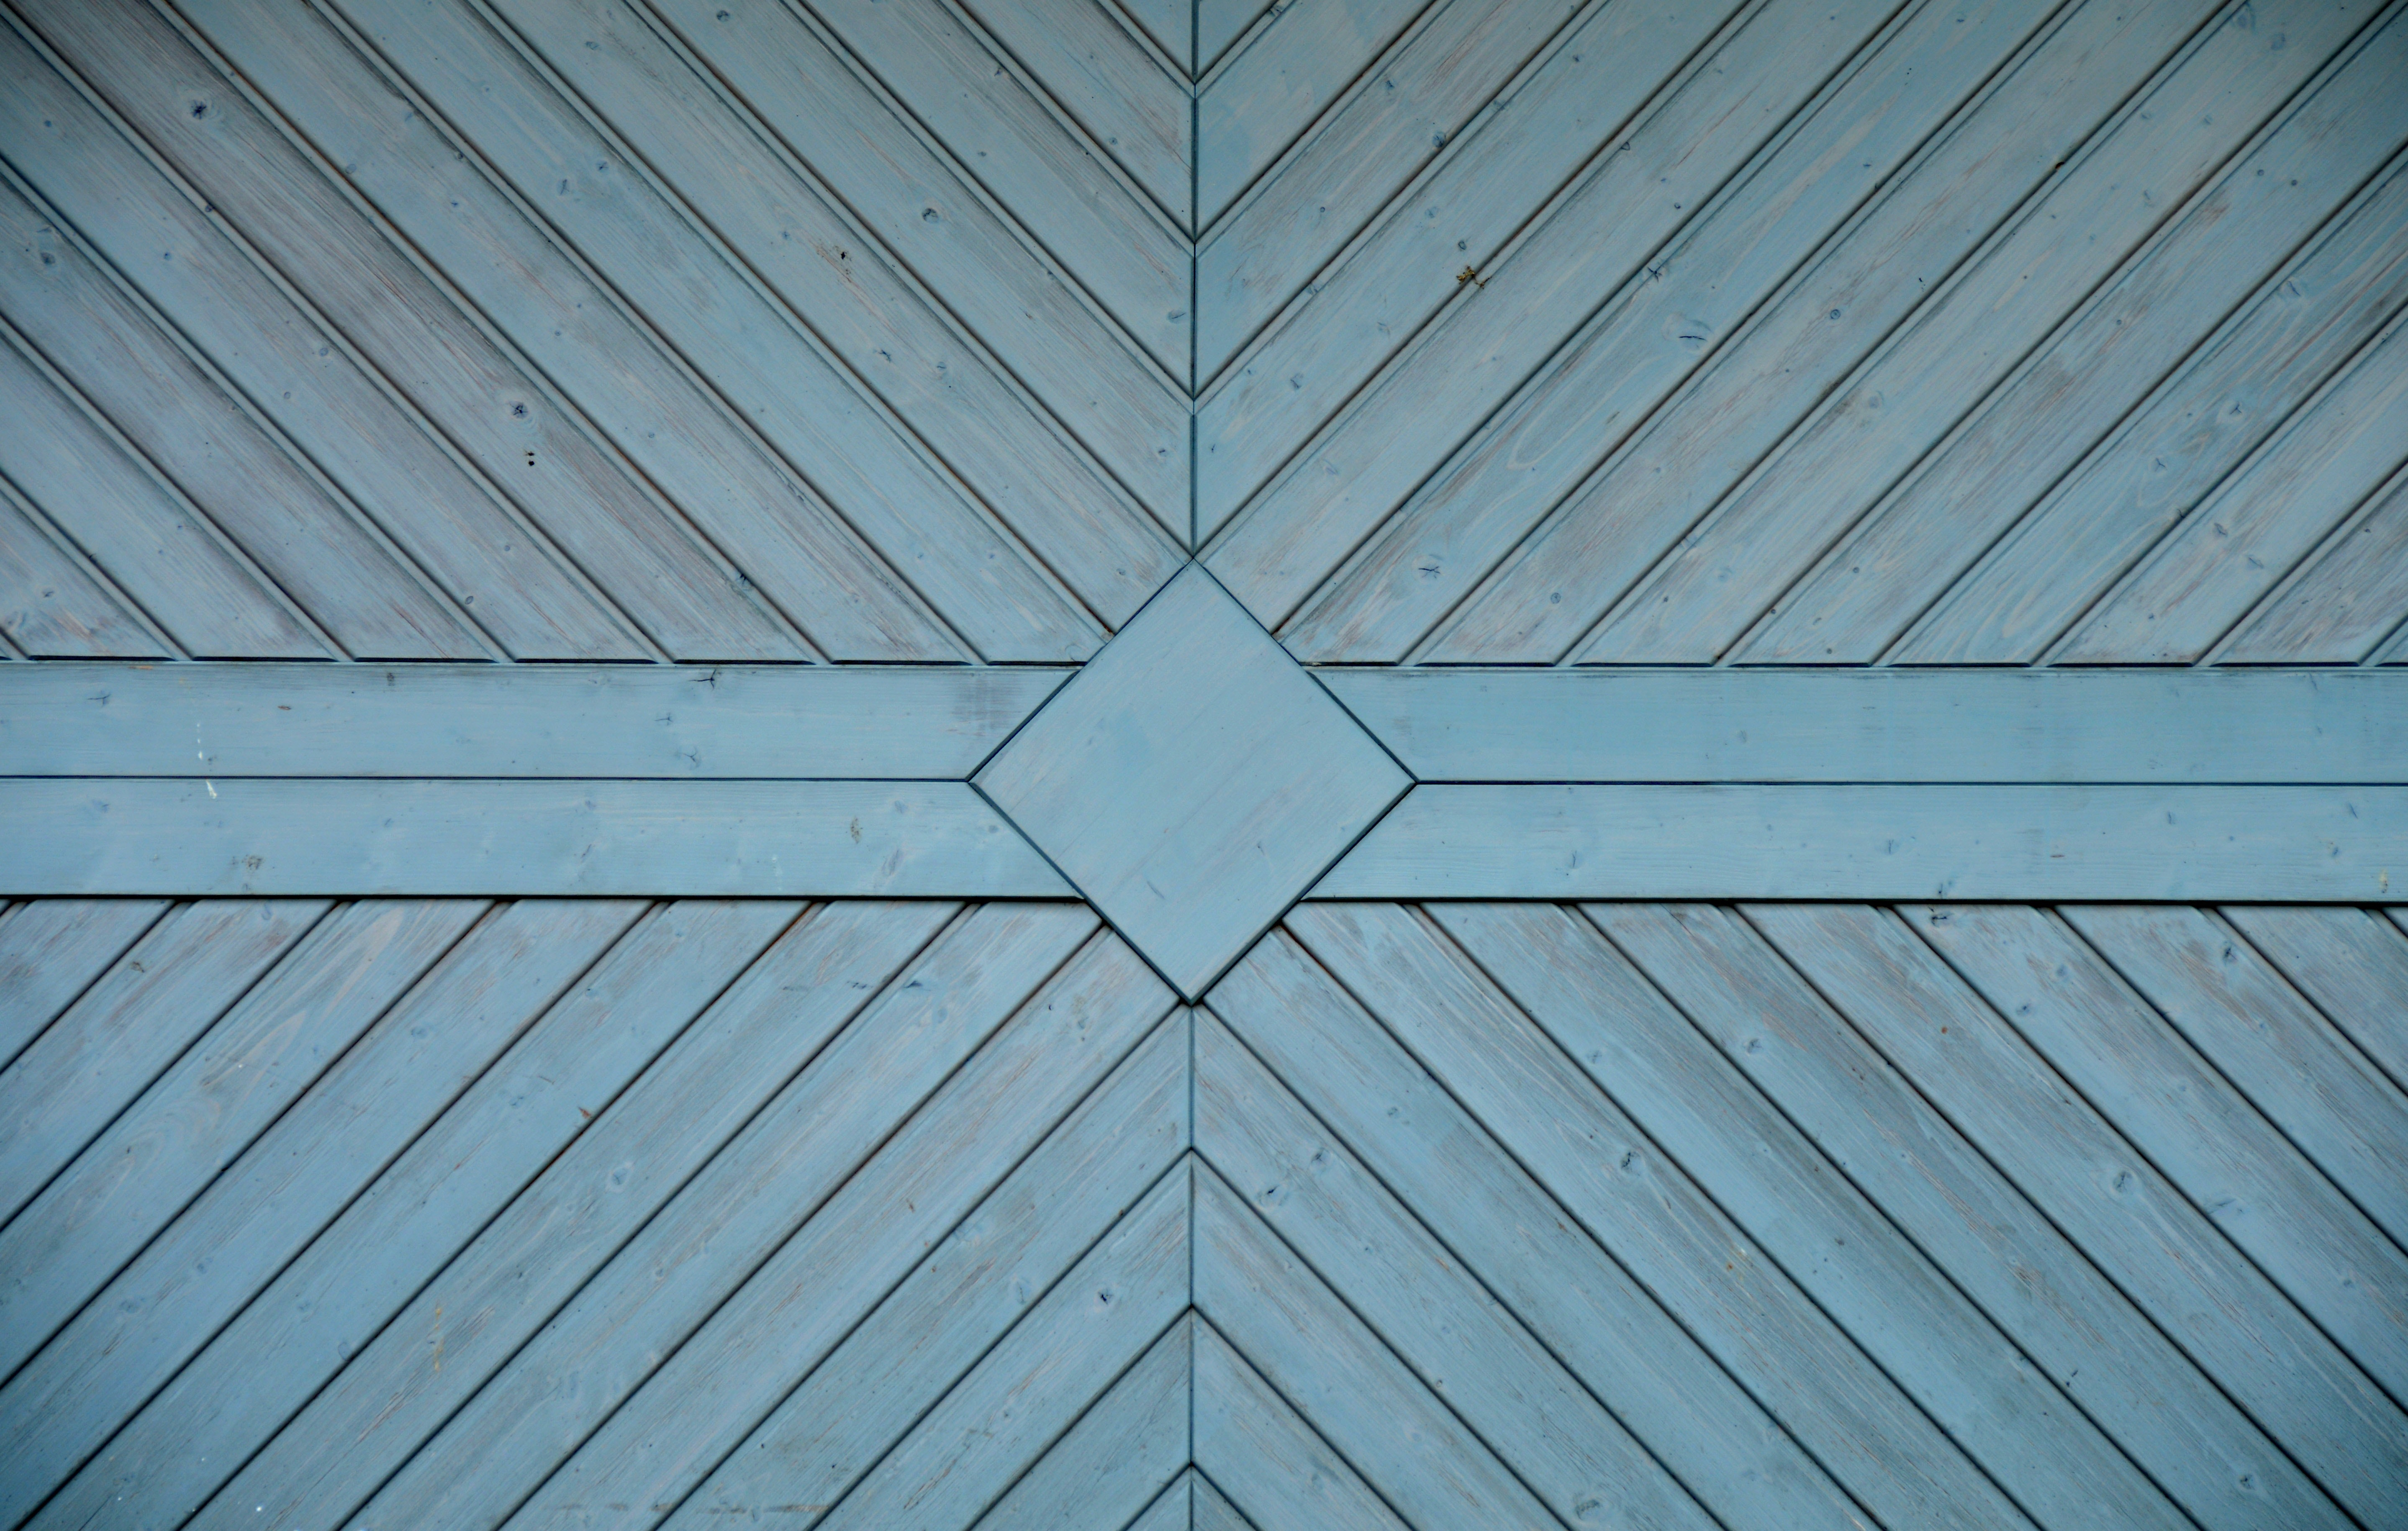 Brown and Blue Wooden Surface, Architecture, Design, Hardwood, Pattern, HQ Photo